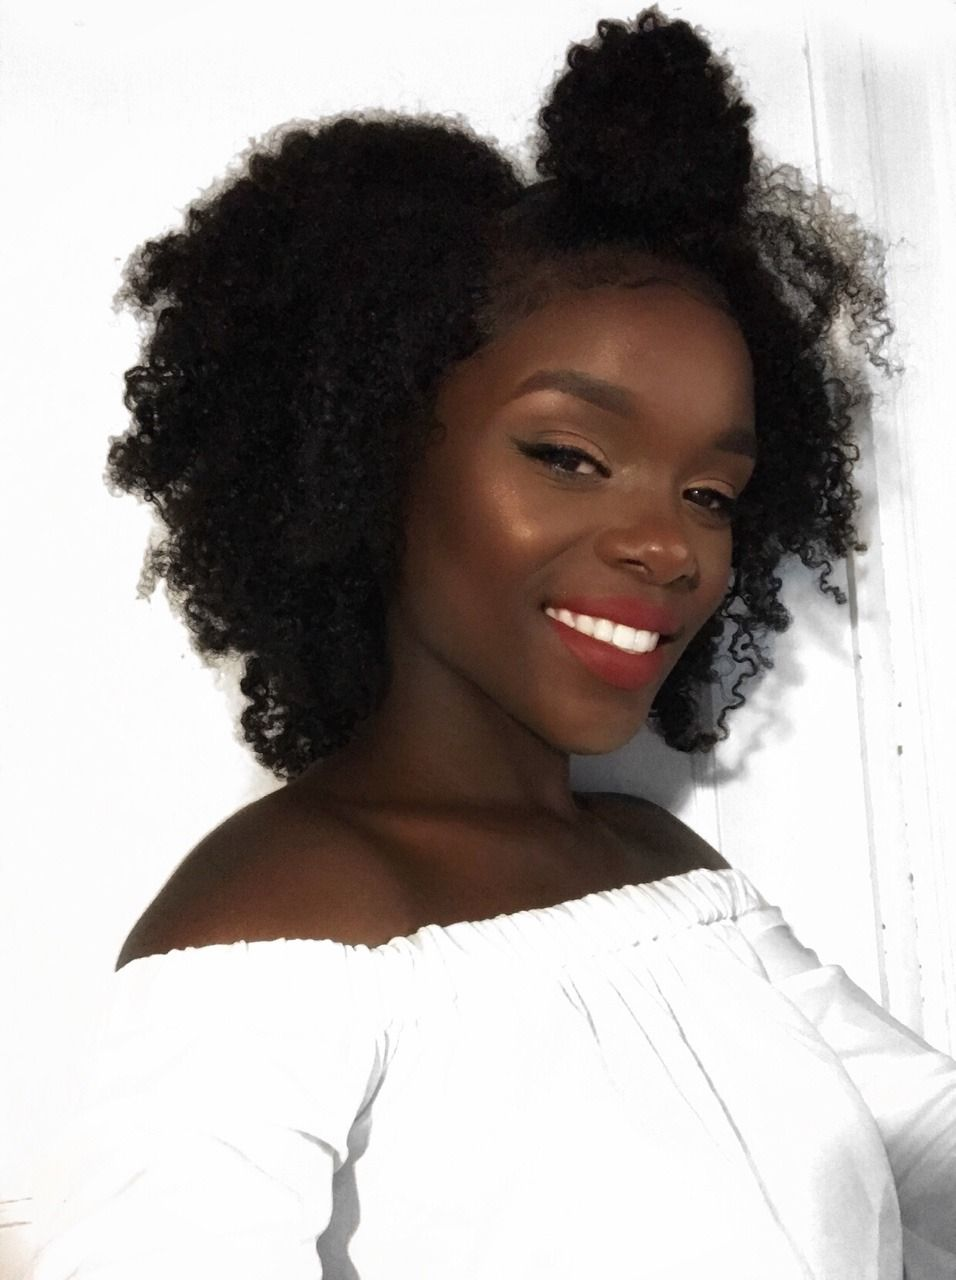 Rewind natural hairstyles pinterest natural black women and